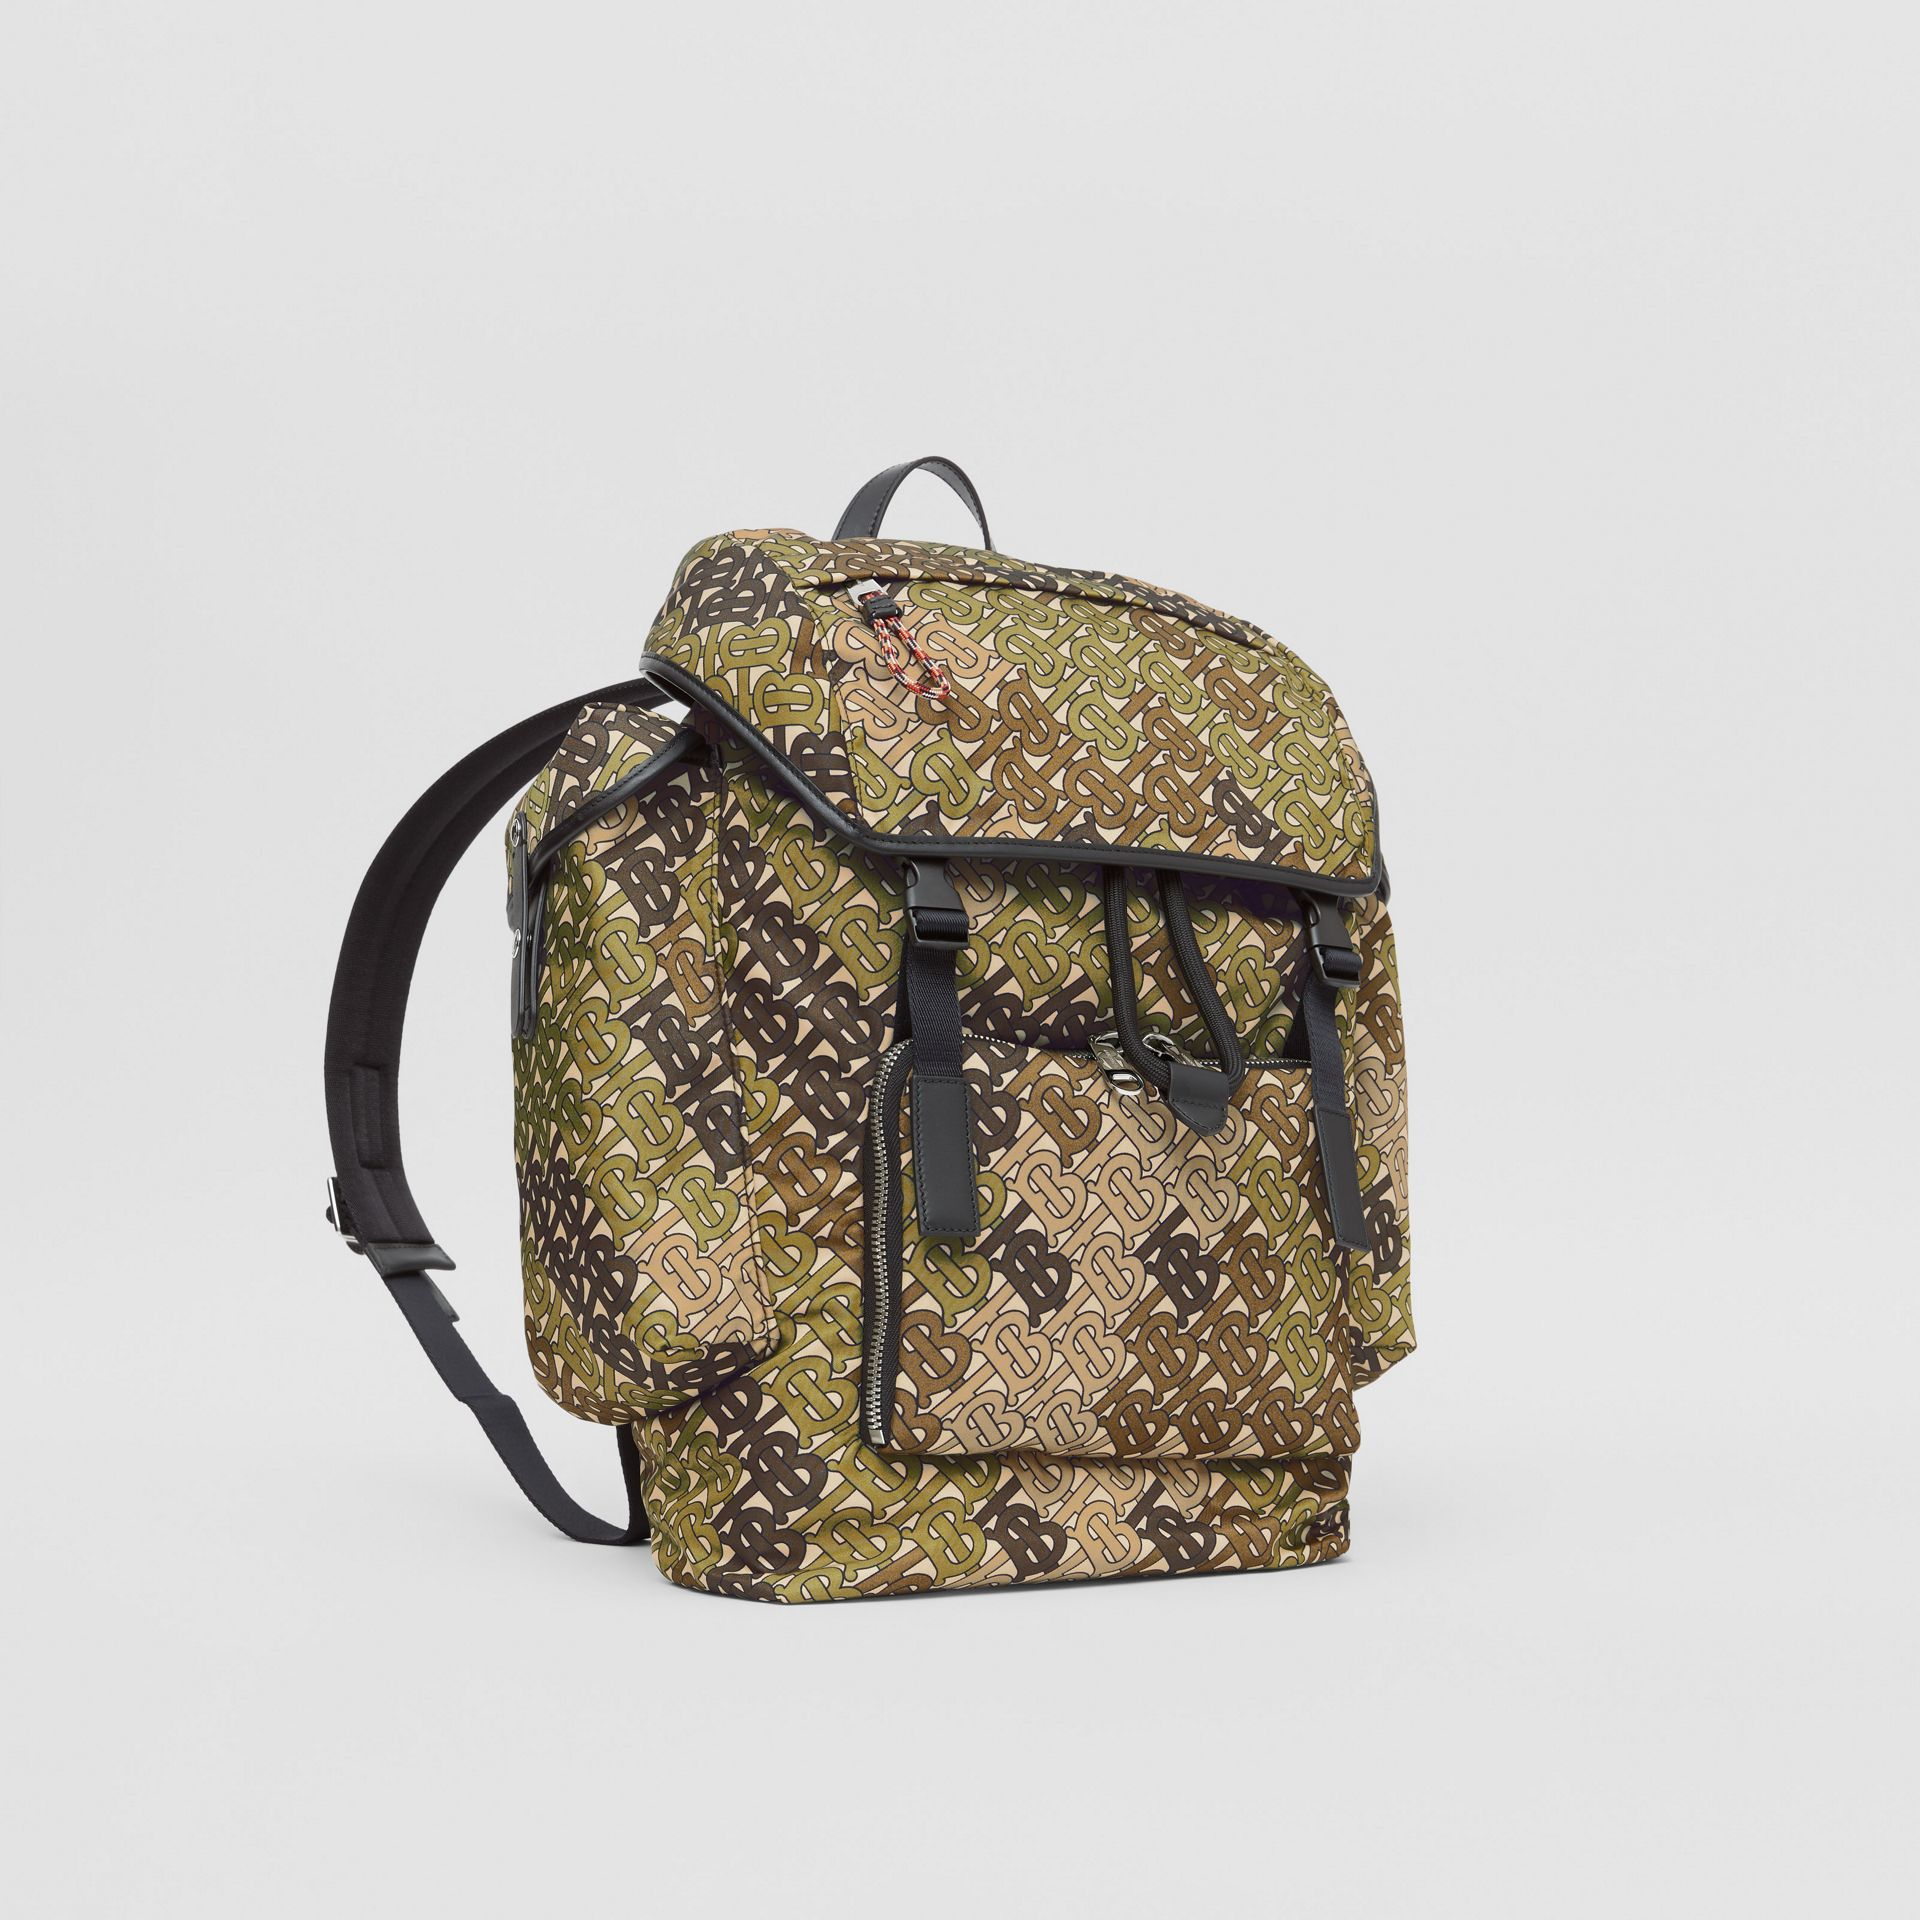 Medium Monogram Print Nylon Backpack in Khaki Green - Men | Burberry - gallery image 4